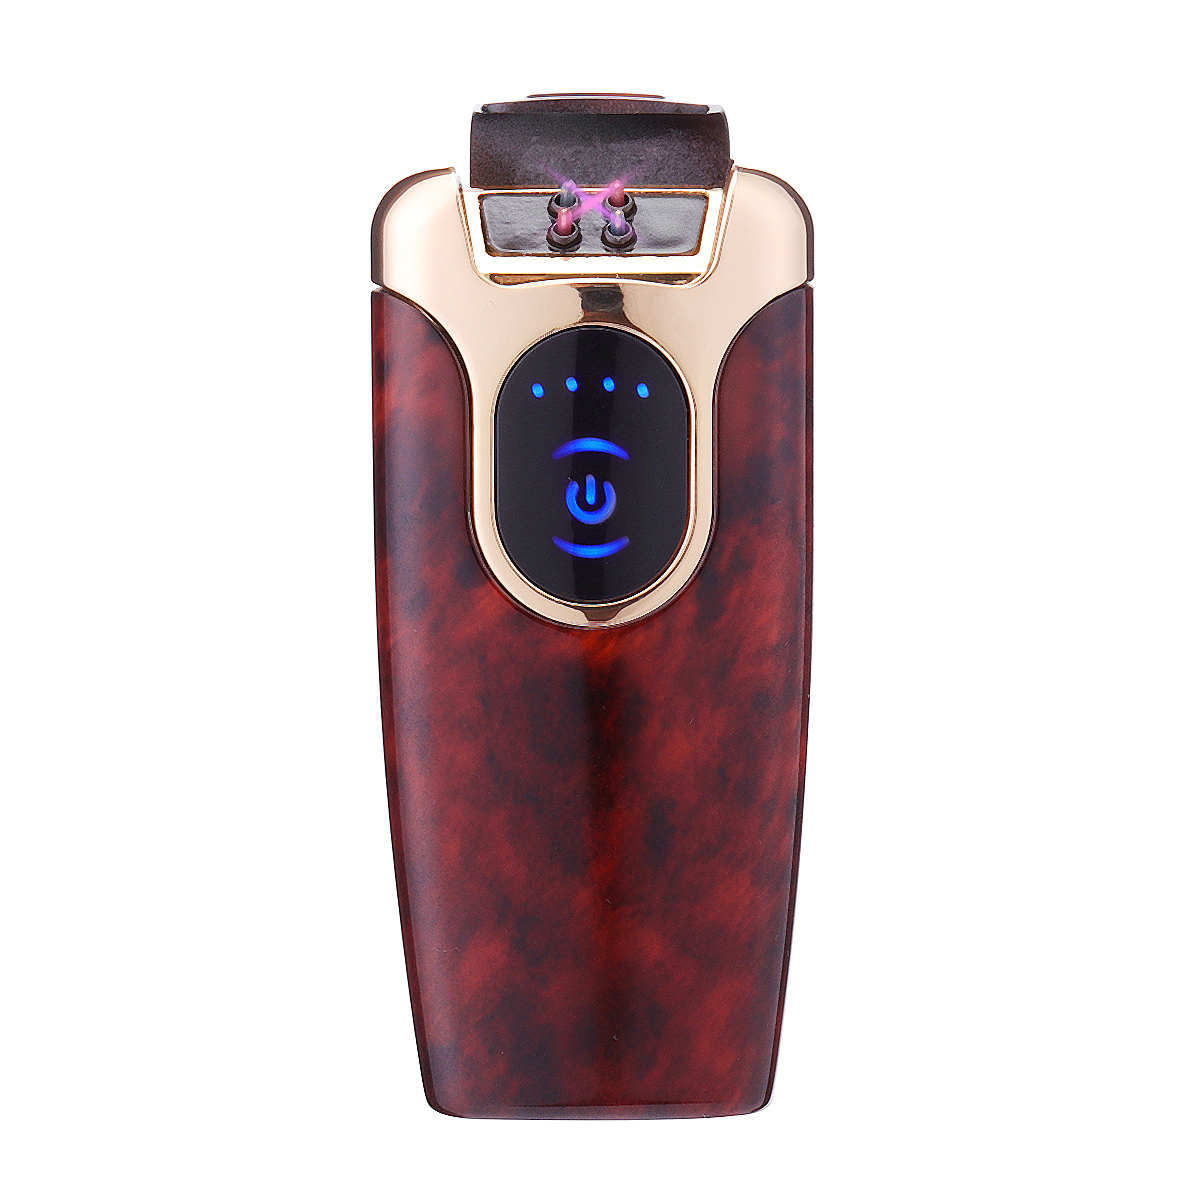 KCASA KC-801 Double Arc Touch Screen Inductive Lighter LED Power Display Electric USB Lighter Windproof